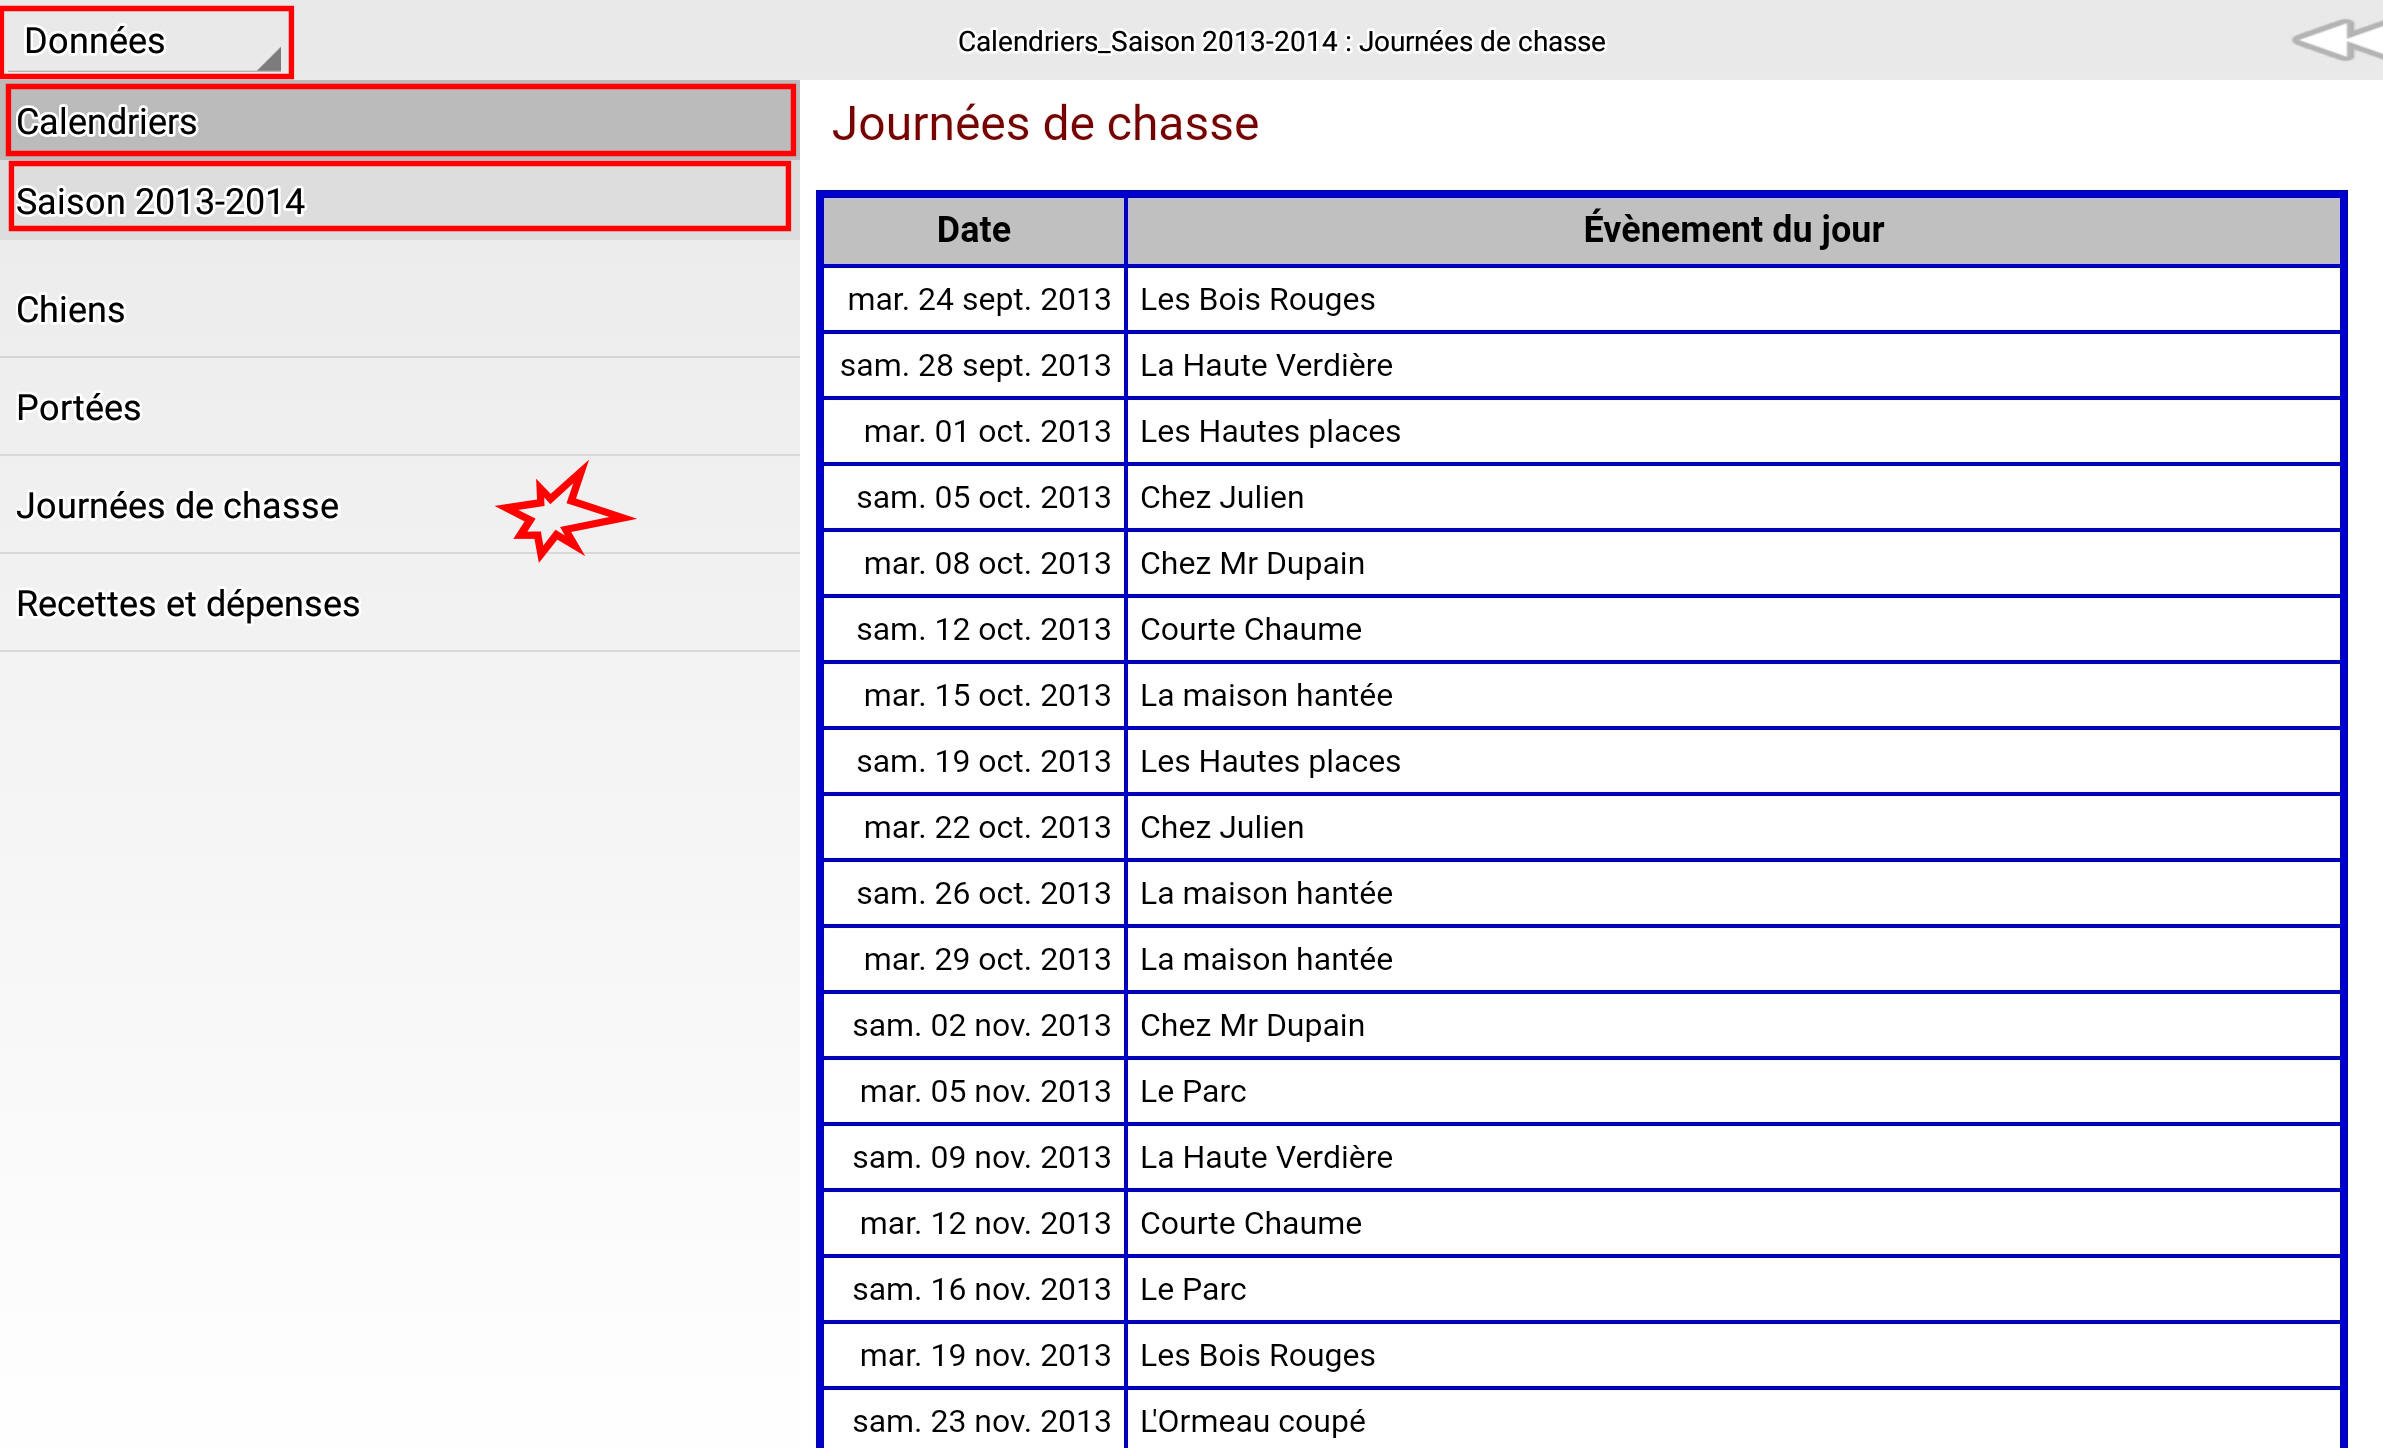 Calendrier chasses